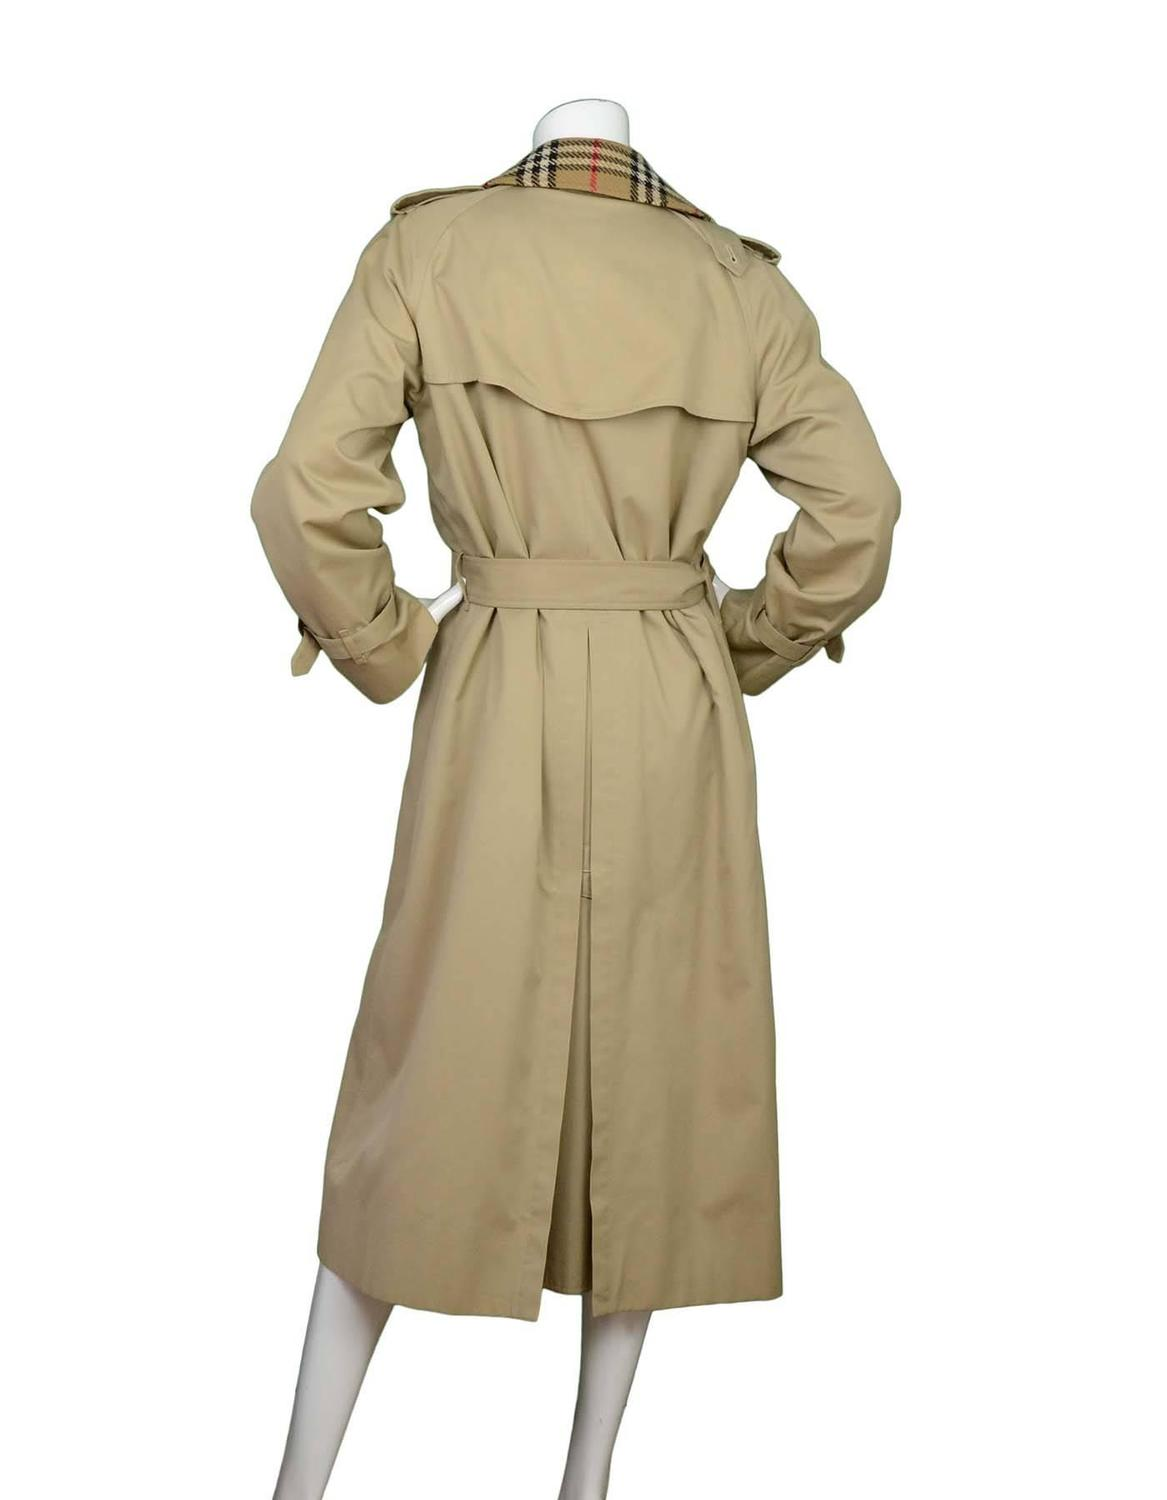 burberry tan long trench coat sz m for sale at 1stdibs. Black Bedroom Furniture Sets. Home Design Ideas